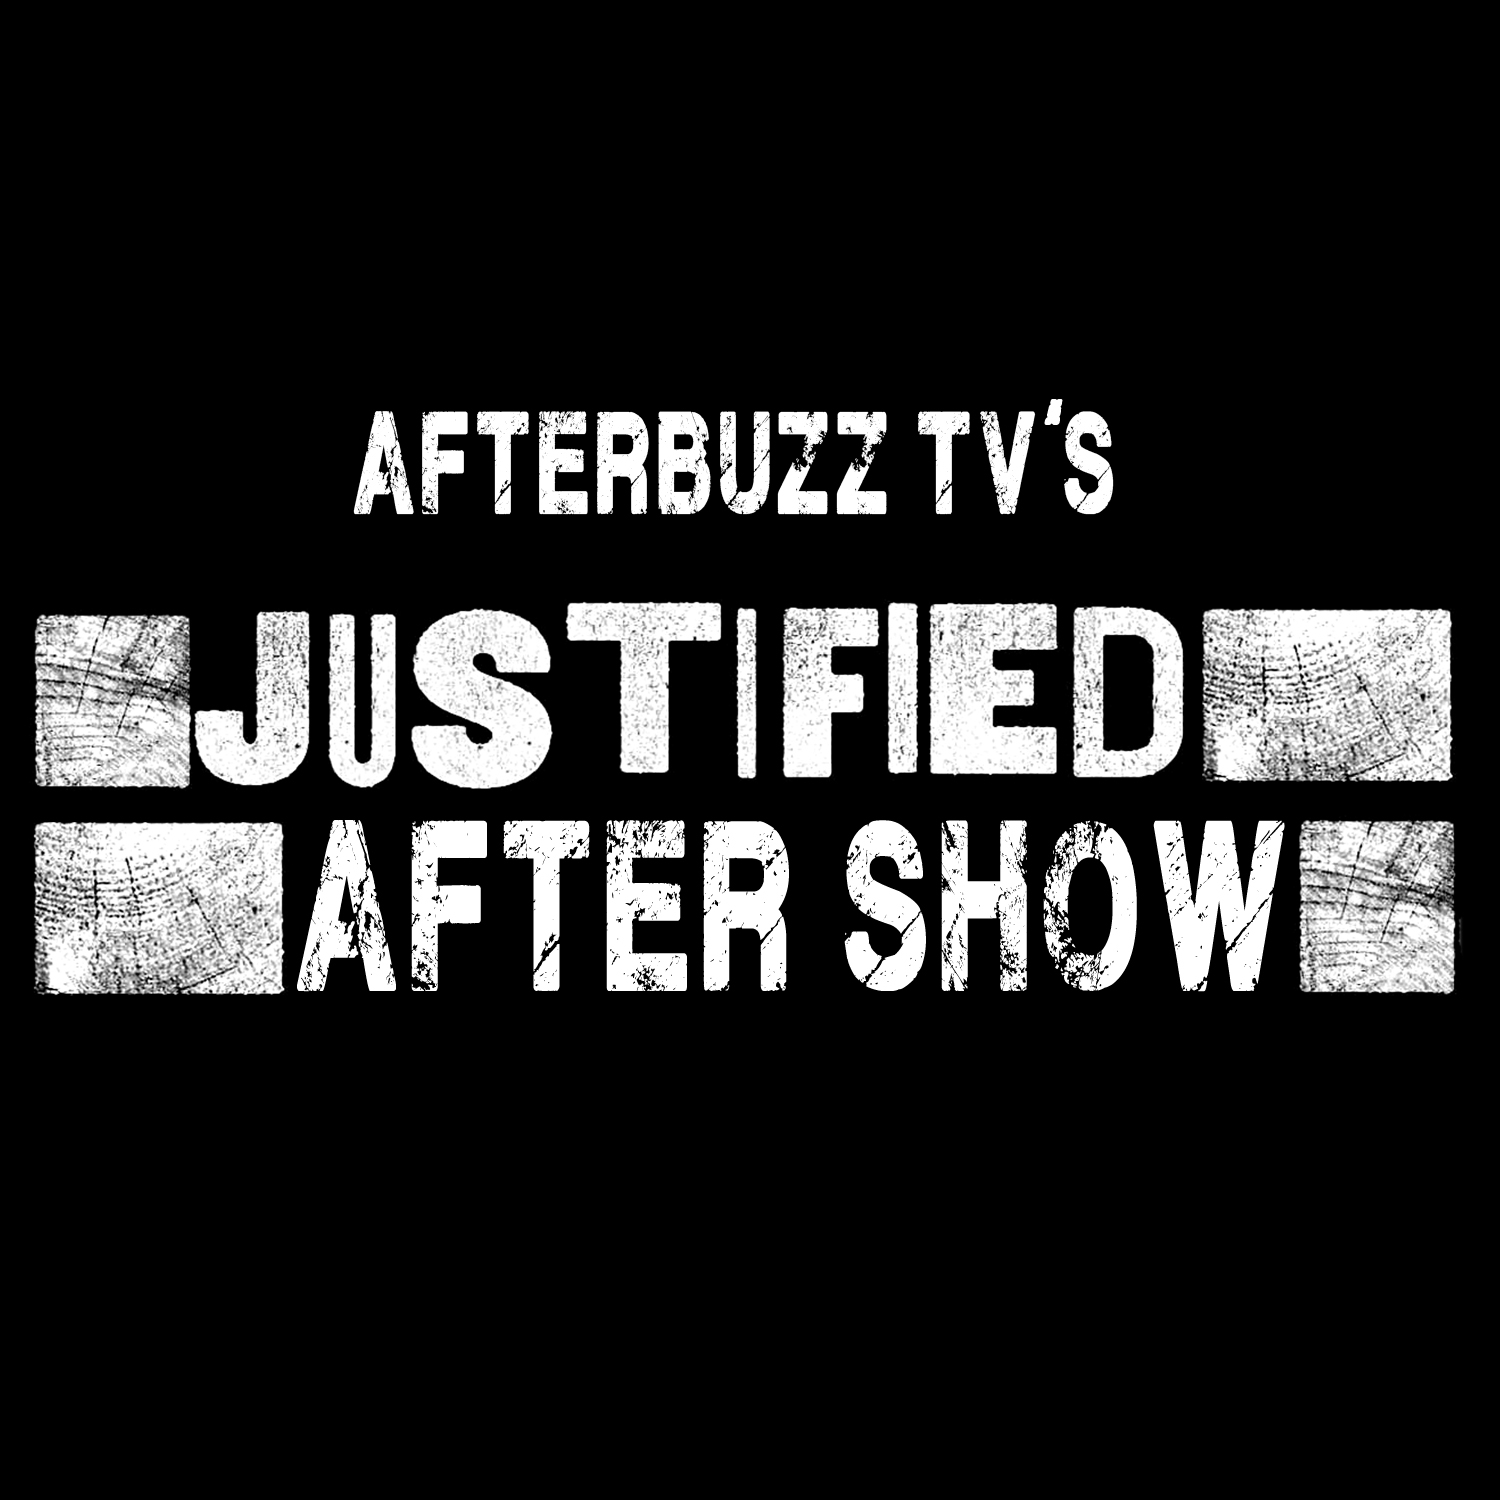 Justified After Show